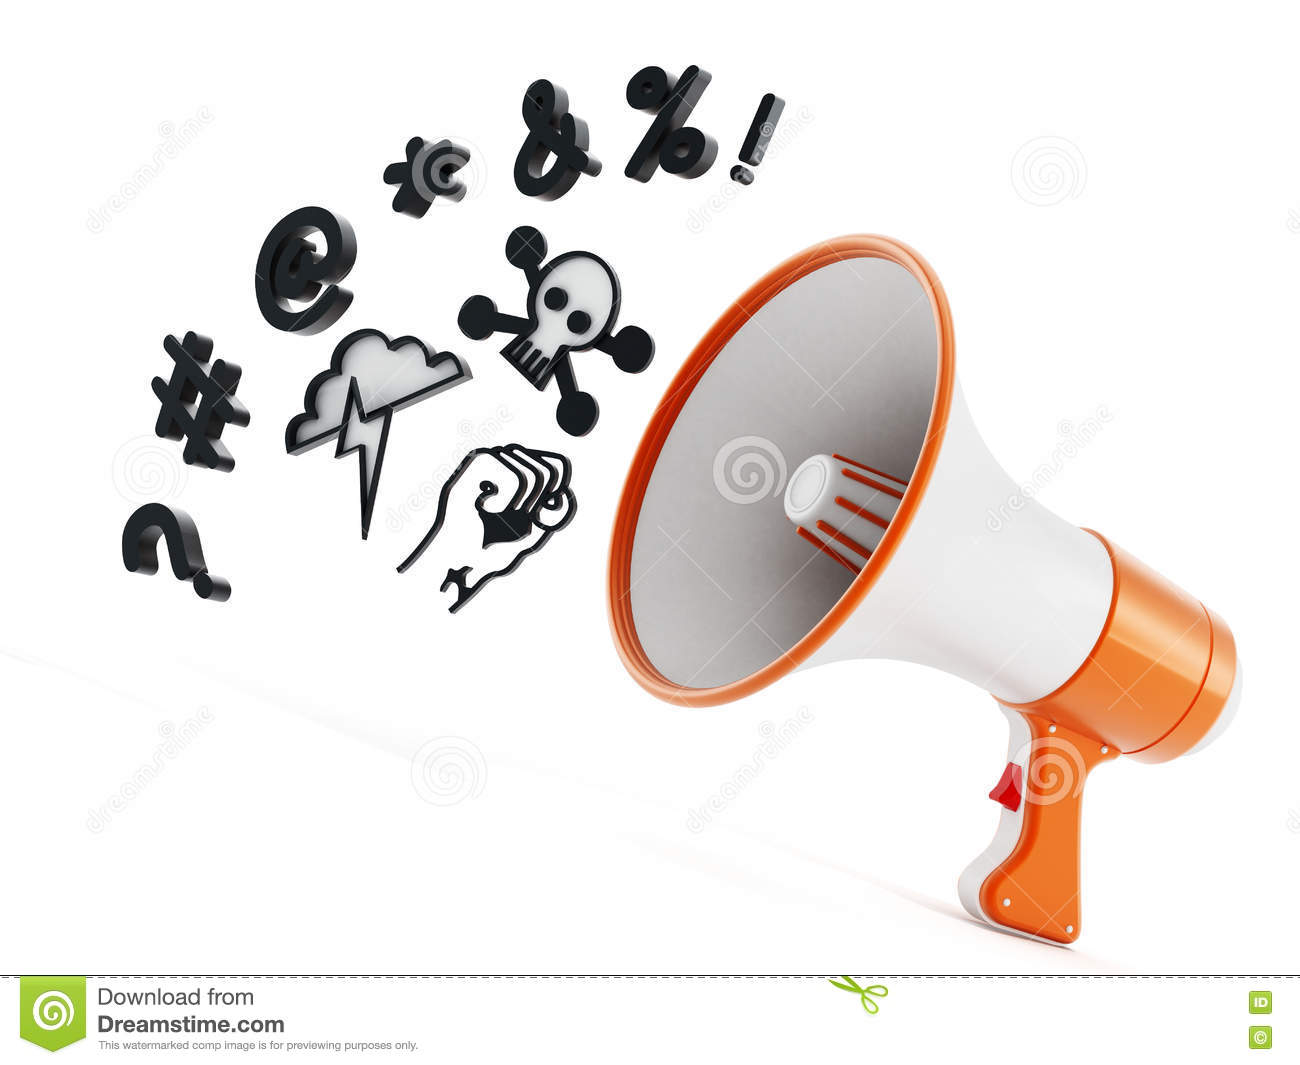 Megaphone With Swearing Symbols Isolated On White Background. 3D.